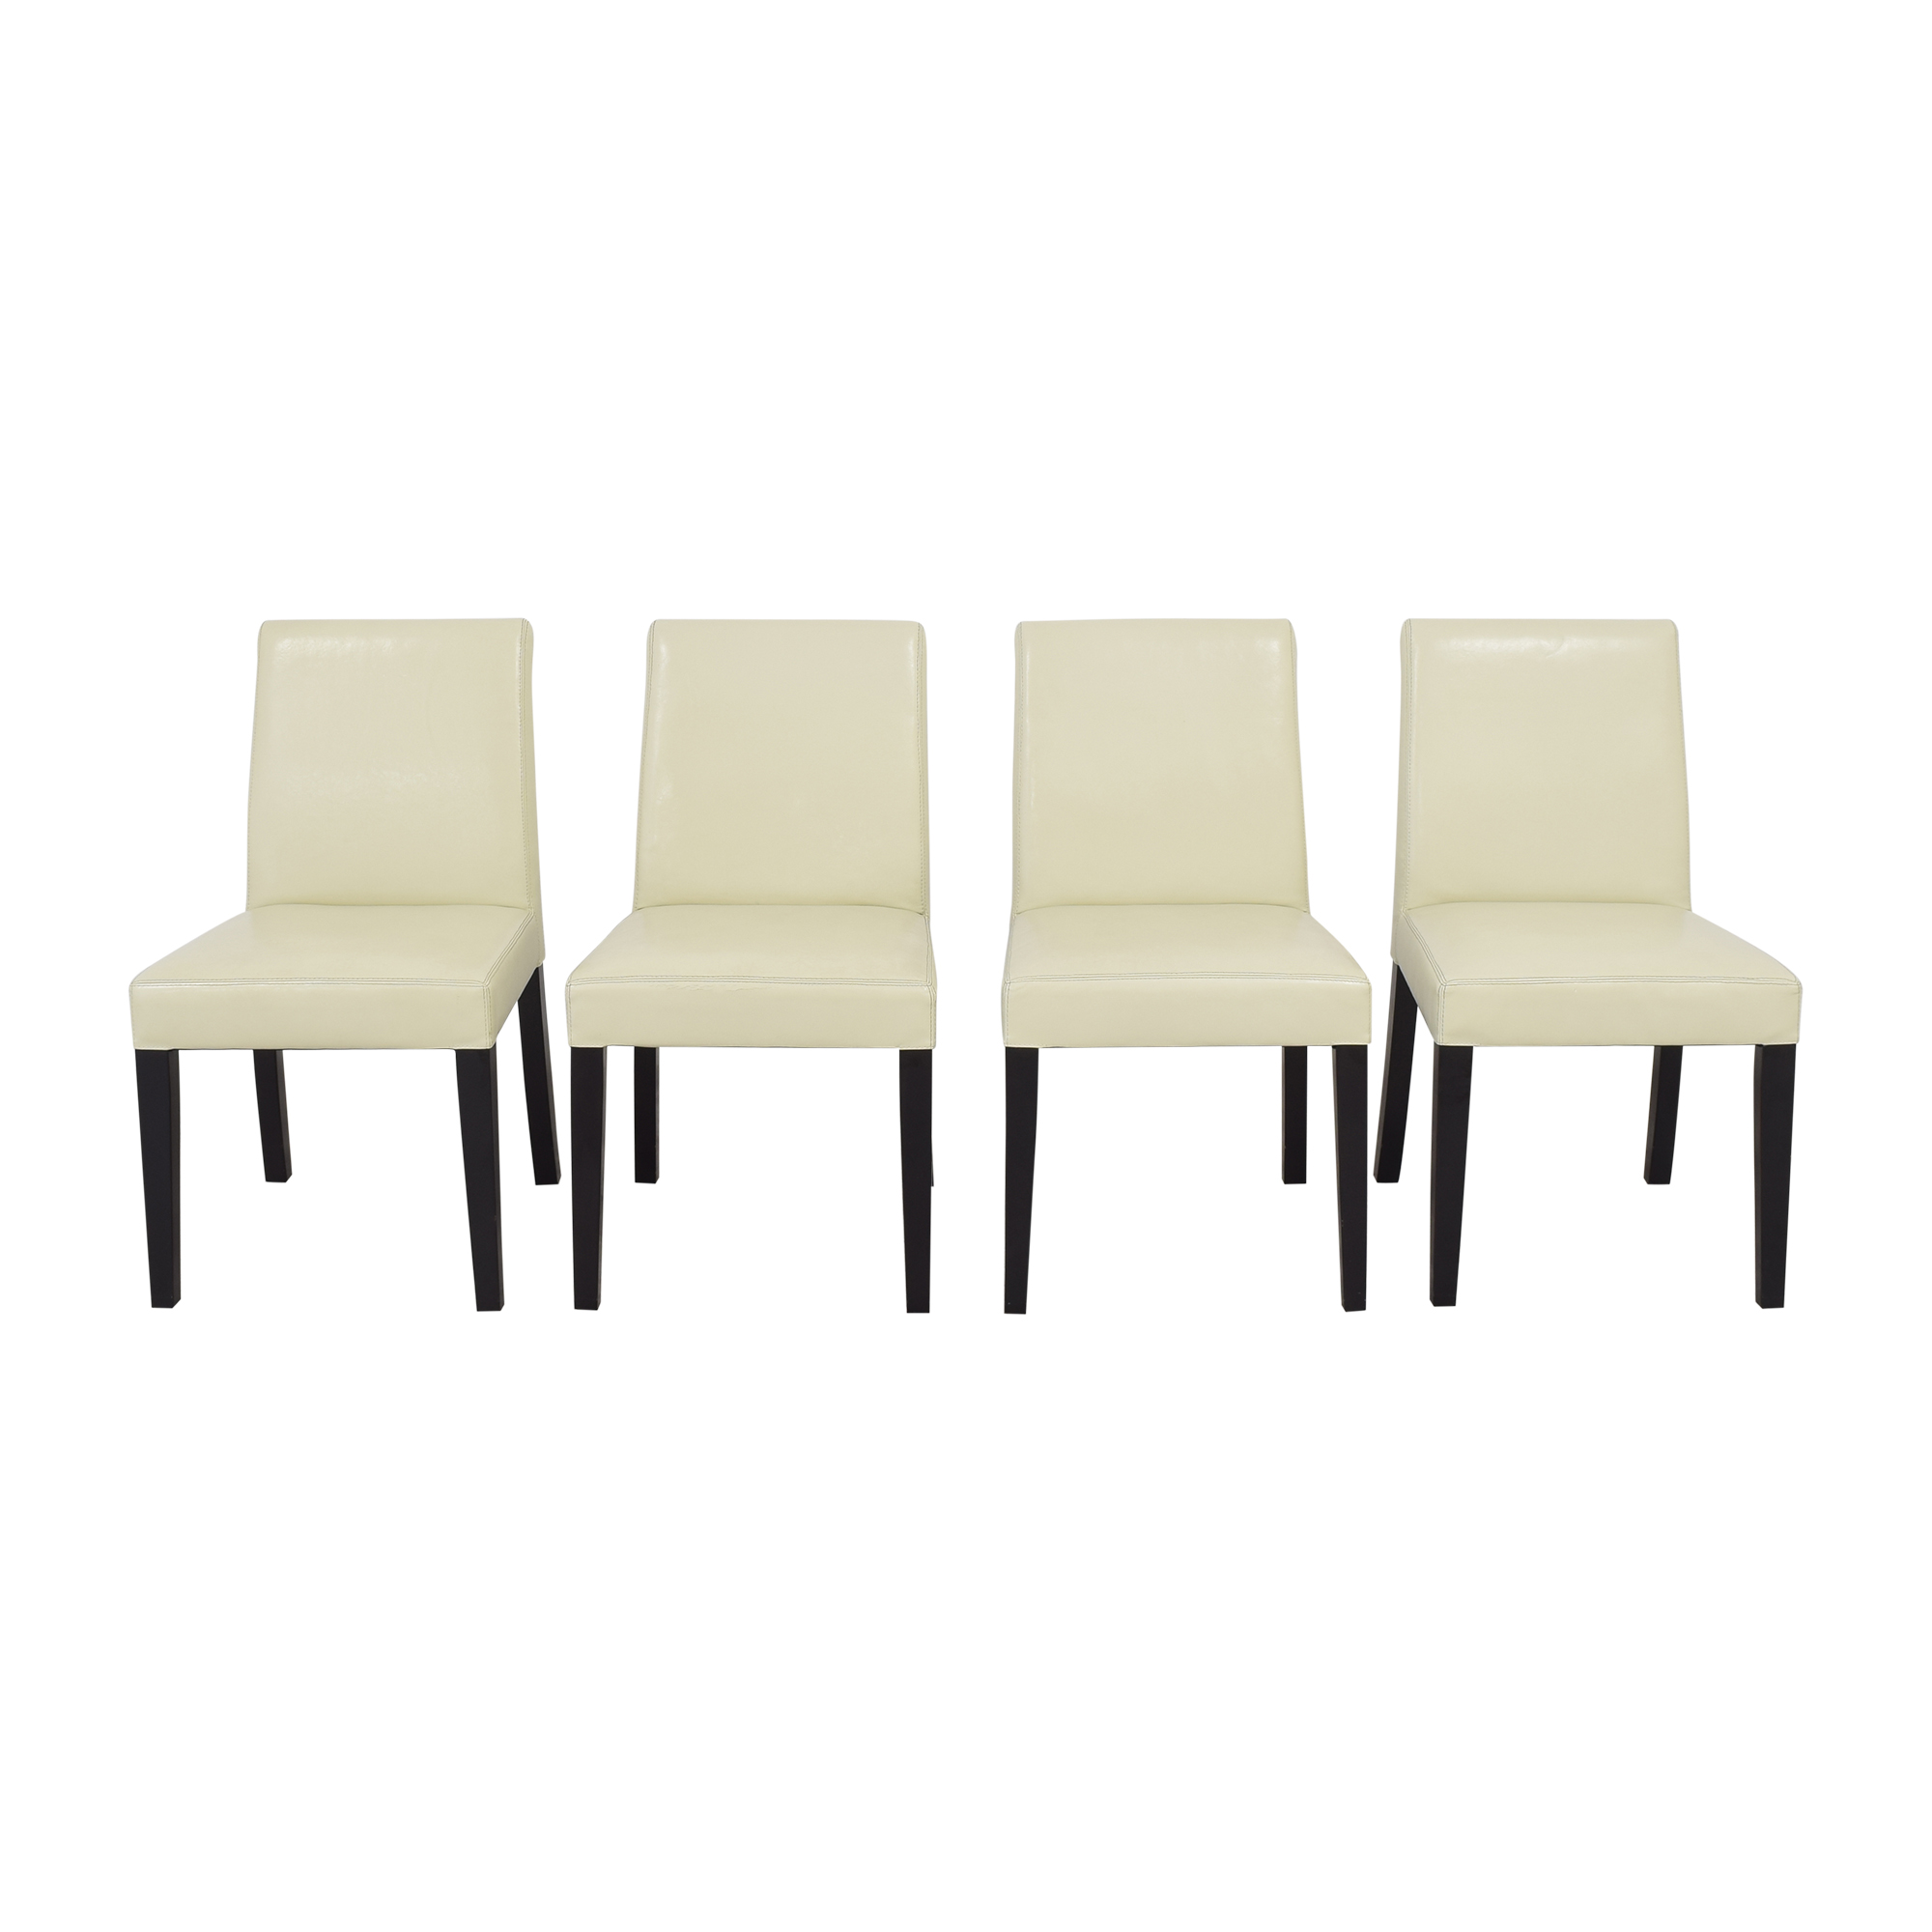 shop Crate & Barrel Pullman Dining Chairs Crate & Barrel Dining Chairs